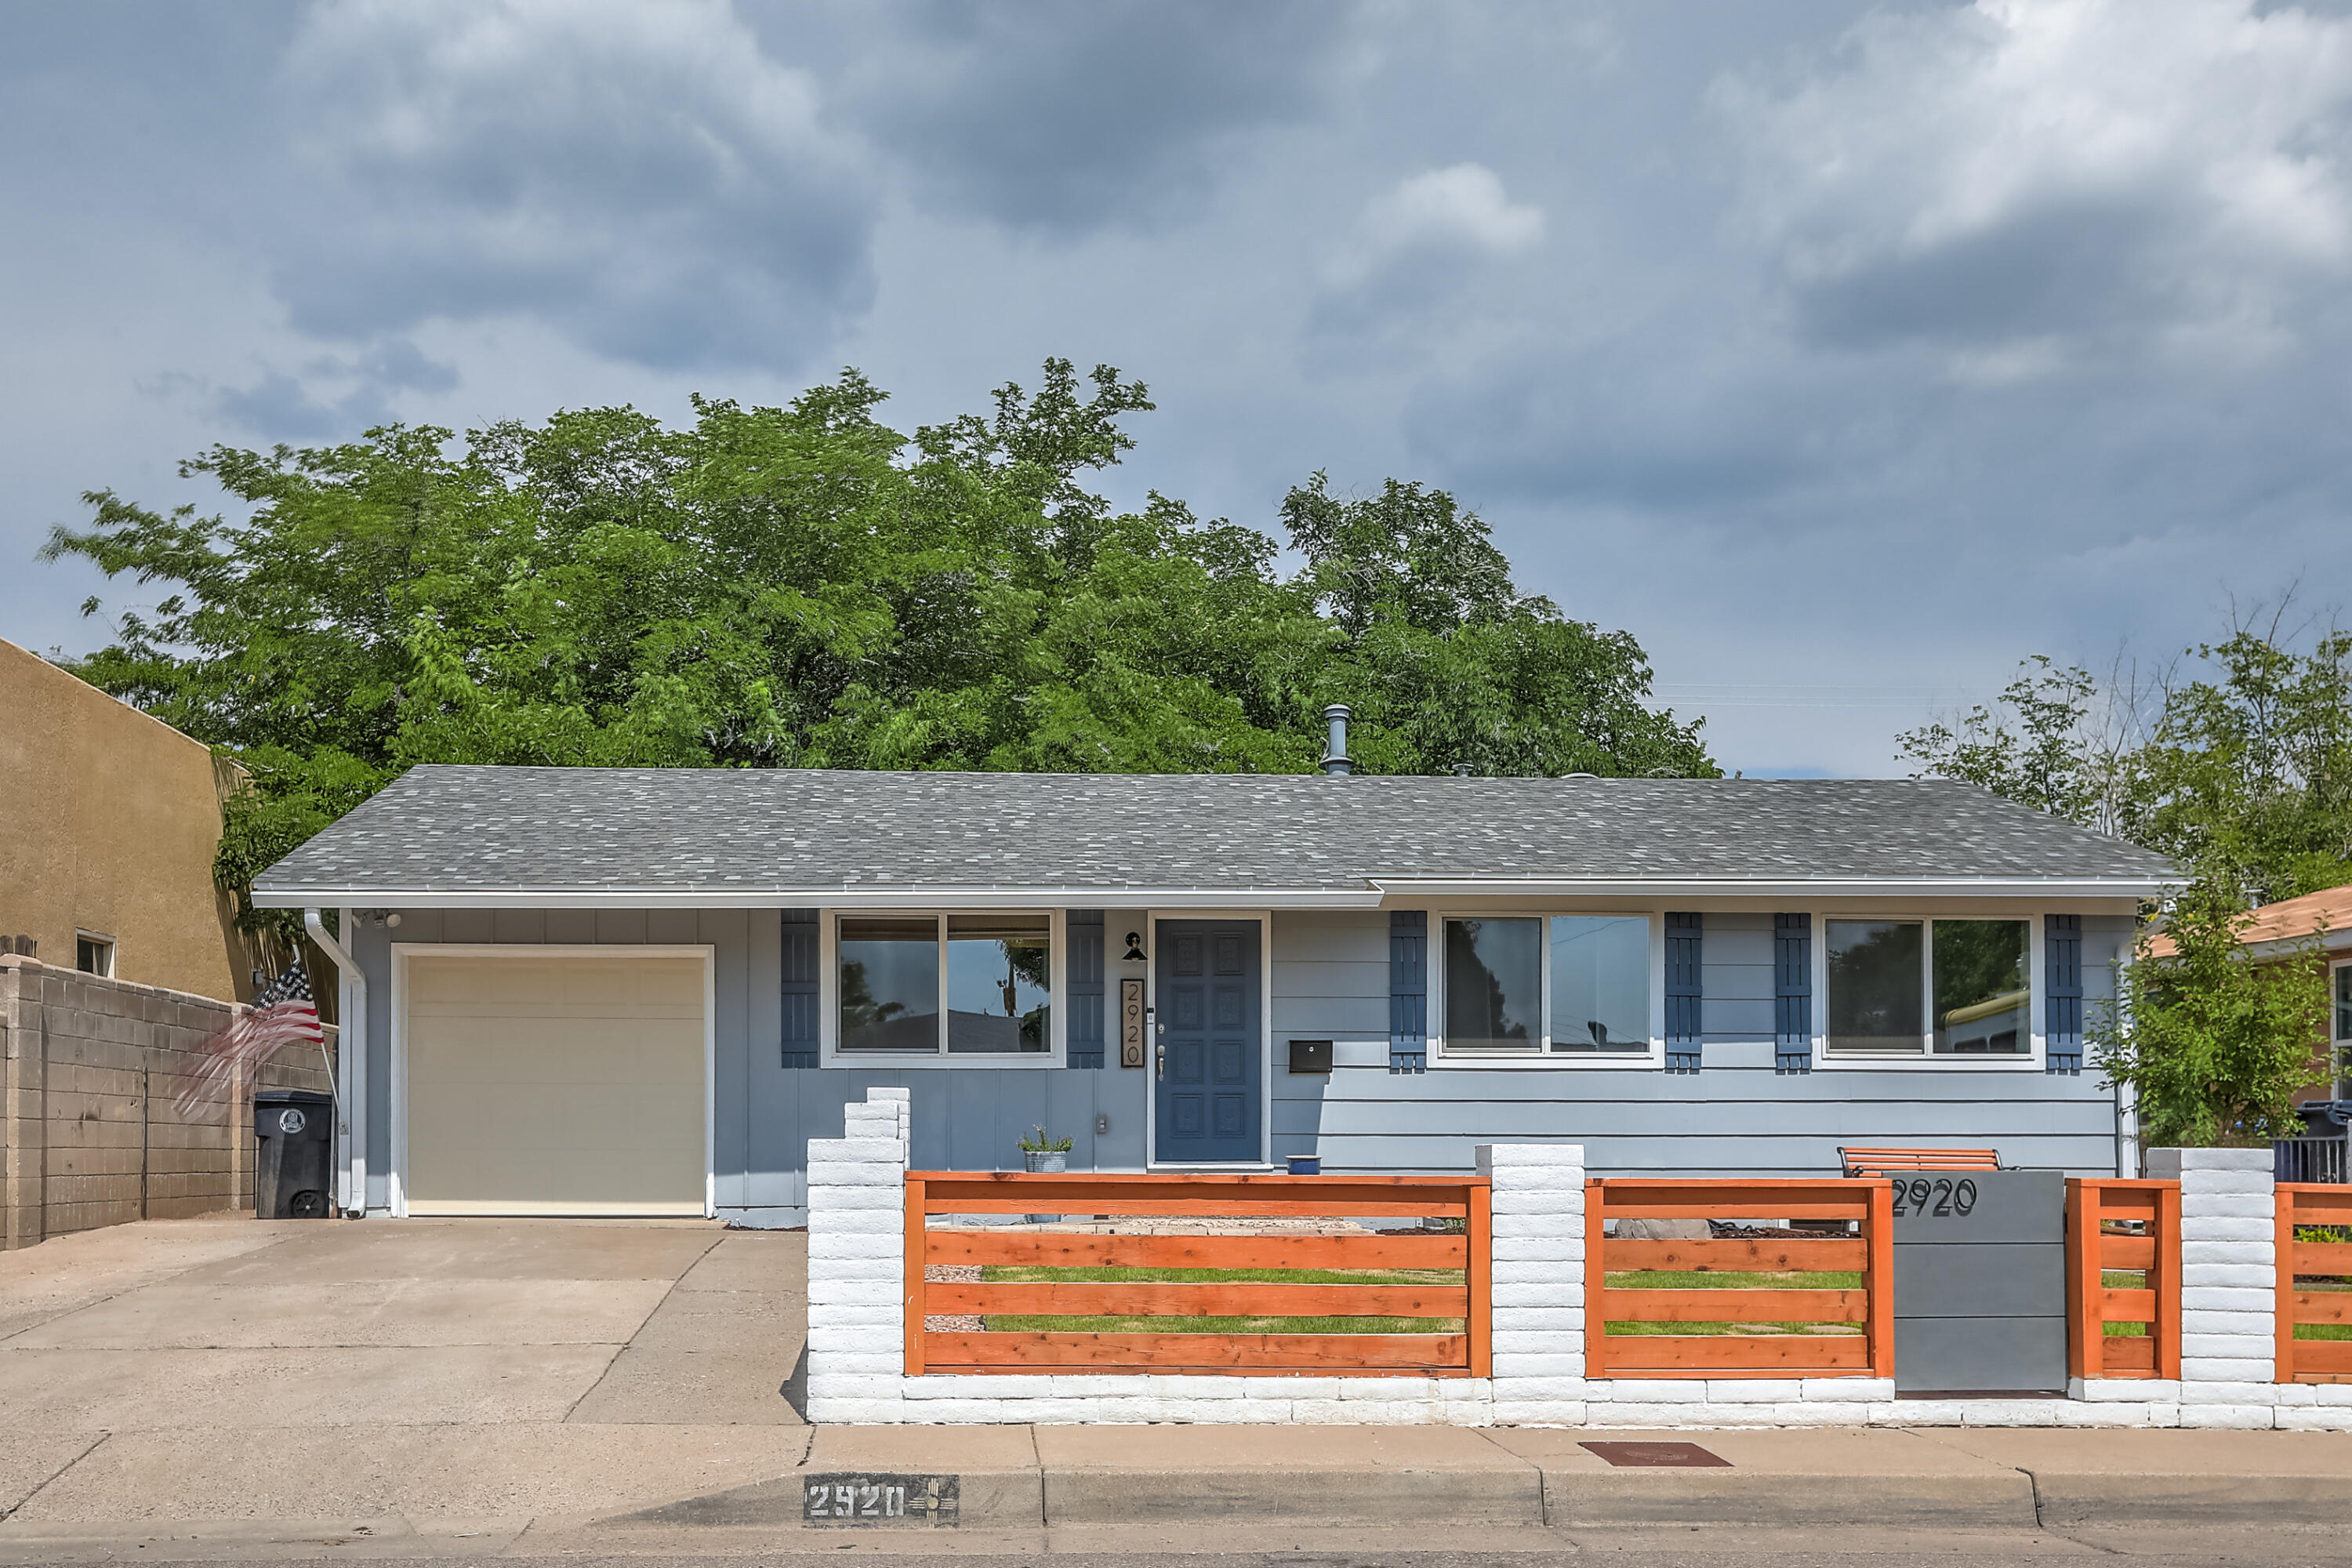 Beautifully updated and remodeled house located in the NE Heights. This home has an open concept living and kitchen area with 4 bedrooms, 3 bathrooms and is move in ready. This house has been fully remodeled and updated. Kitchen features custom cabinets, black stainless steel appliances, new  granite countertops, white subway tile backsplash, extra sink and pot filler over stove. The master bedroom has a luxurious ensuite bath with a separate shower. Downstairs you will find 3 bedrooms and 2 flex spaces with a kitchenette and bathroom.  This house also features just about new everything, see seller improvements list!